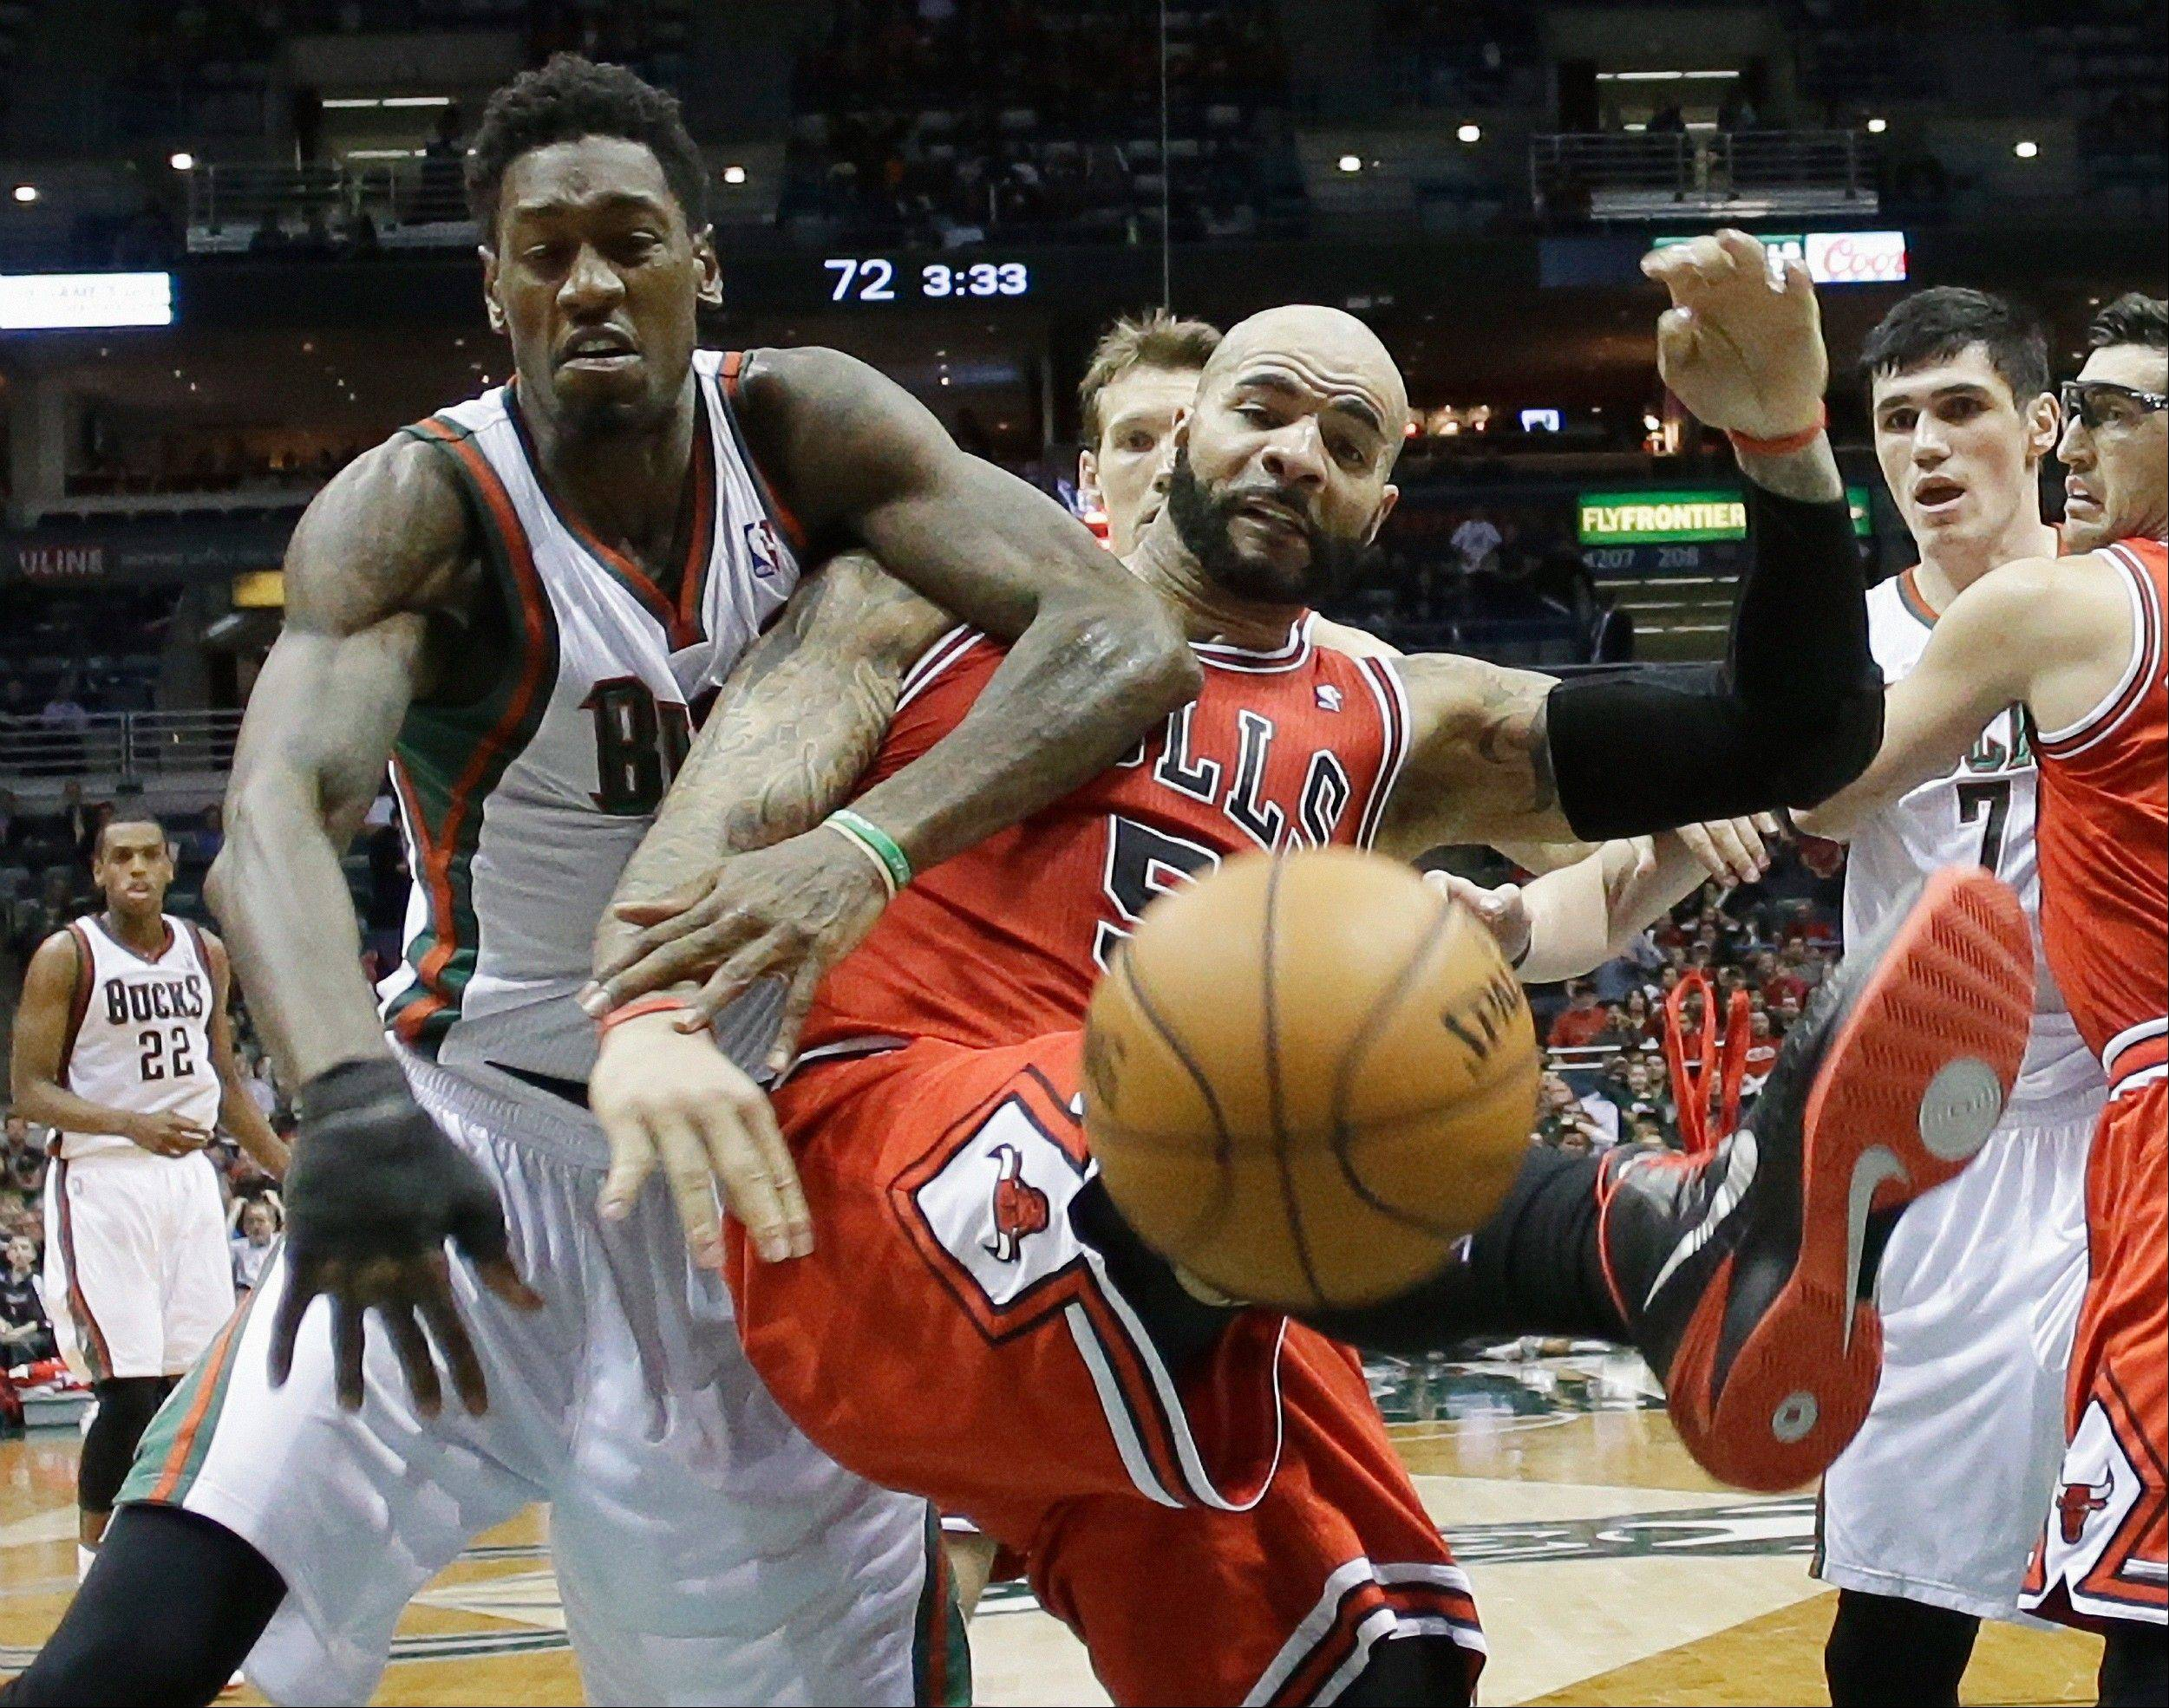 Milwaukee Bucks' Larry Sanders and Chicago Bulls' Carlos Boozer (5) go after a loose ball during the second half of an NBA basketball game Friday, Jan. 10, 2014, in Milwaukee. The Bulls won 81-72. (AP Photo/Morry Gash)